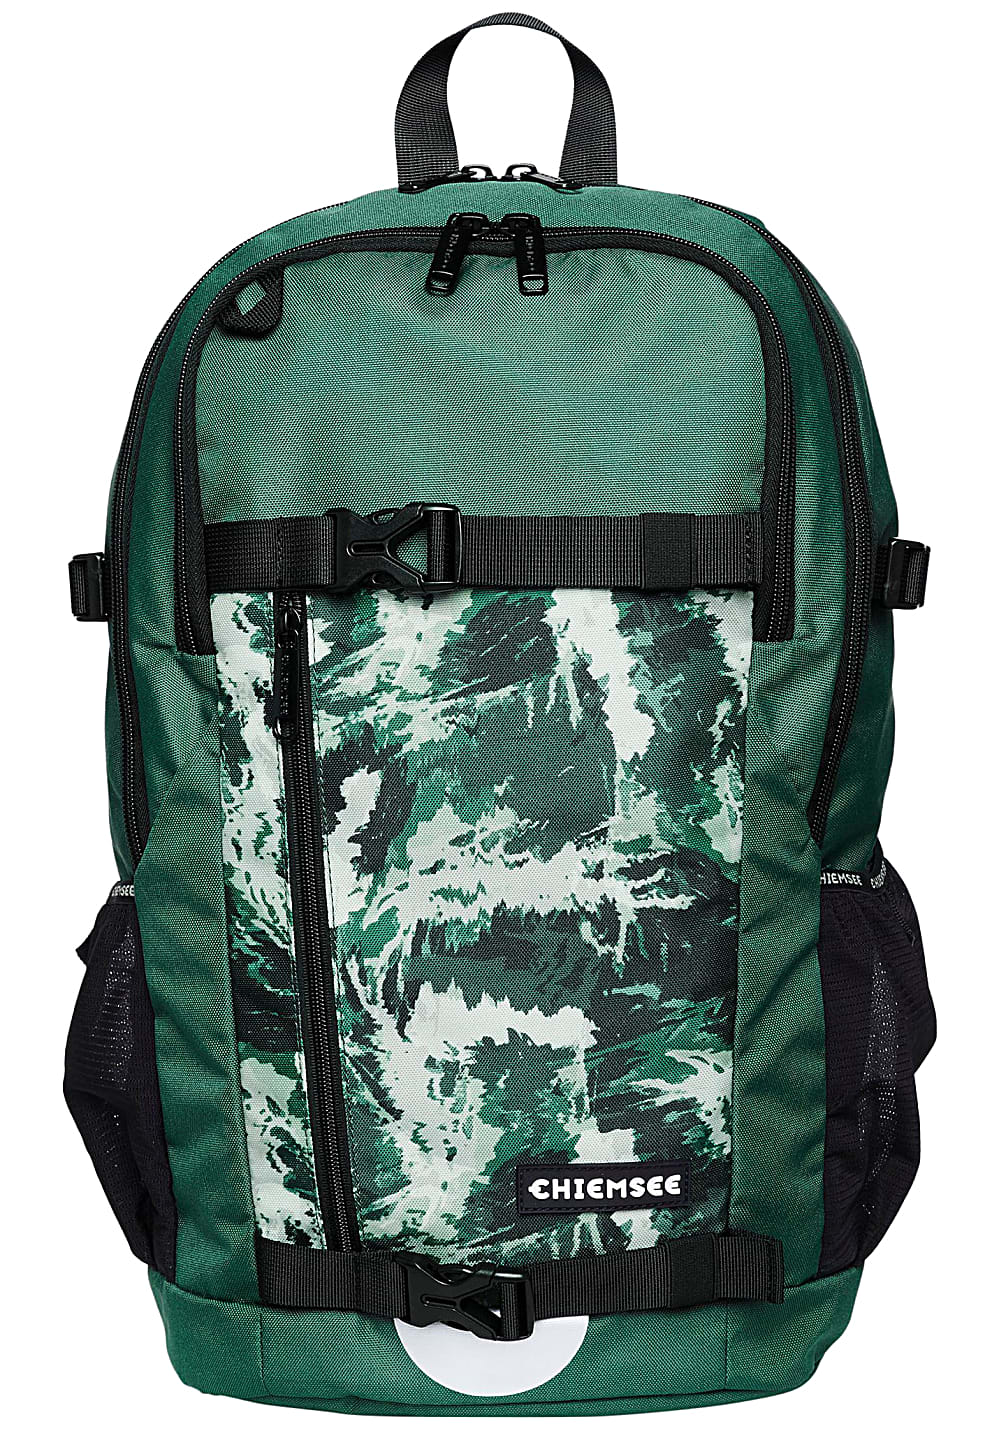 fd30b2871f4ebd Chiemsee Rucksack - Backpack - Green - Planet Sports